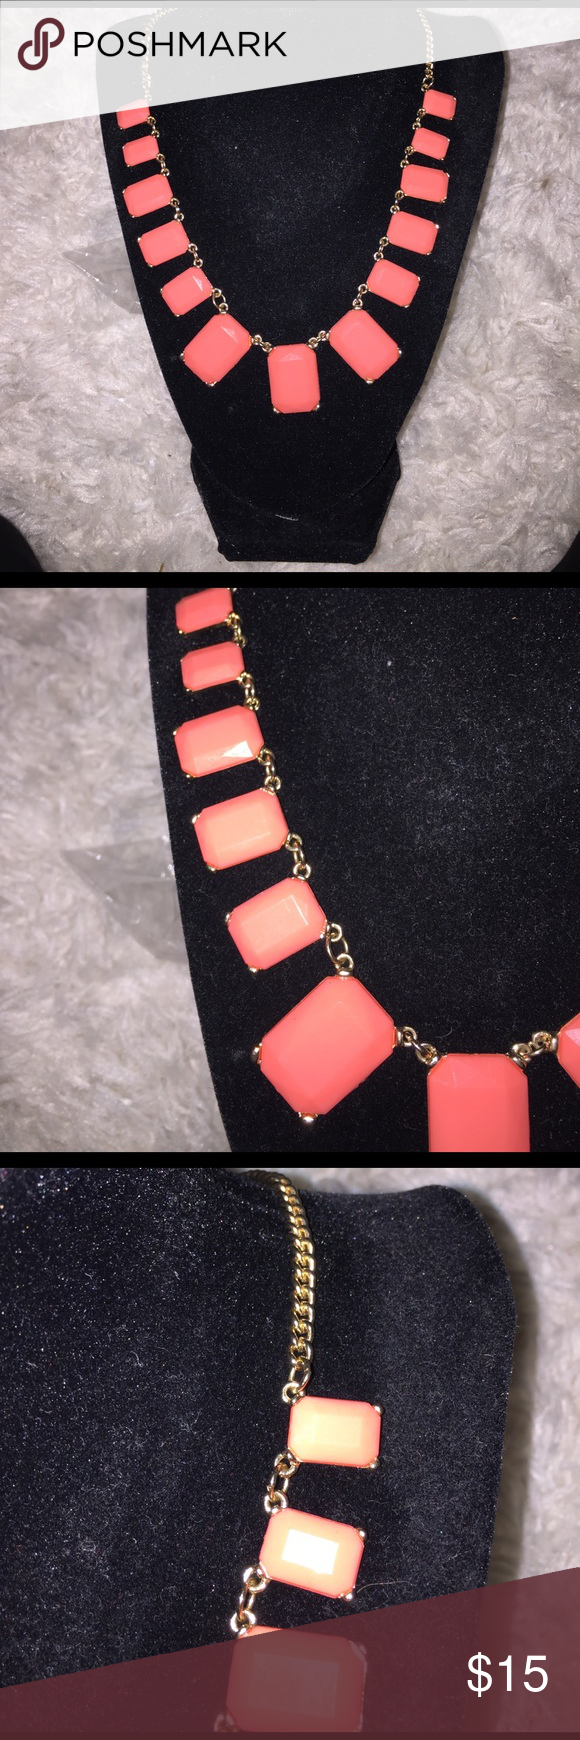 Orange Necklace Beautiful orange necklace with gold chain- pair with dress or cute shirt! Jewelry Necklaces